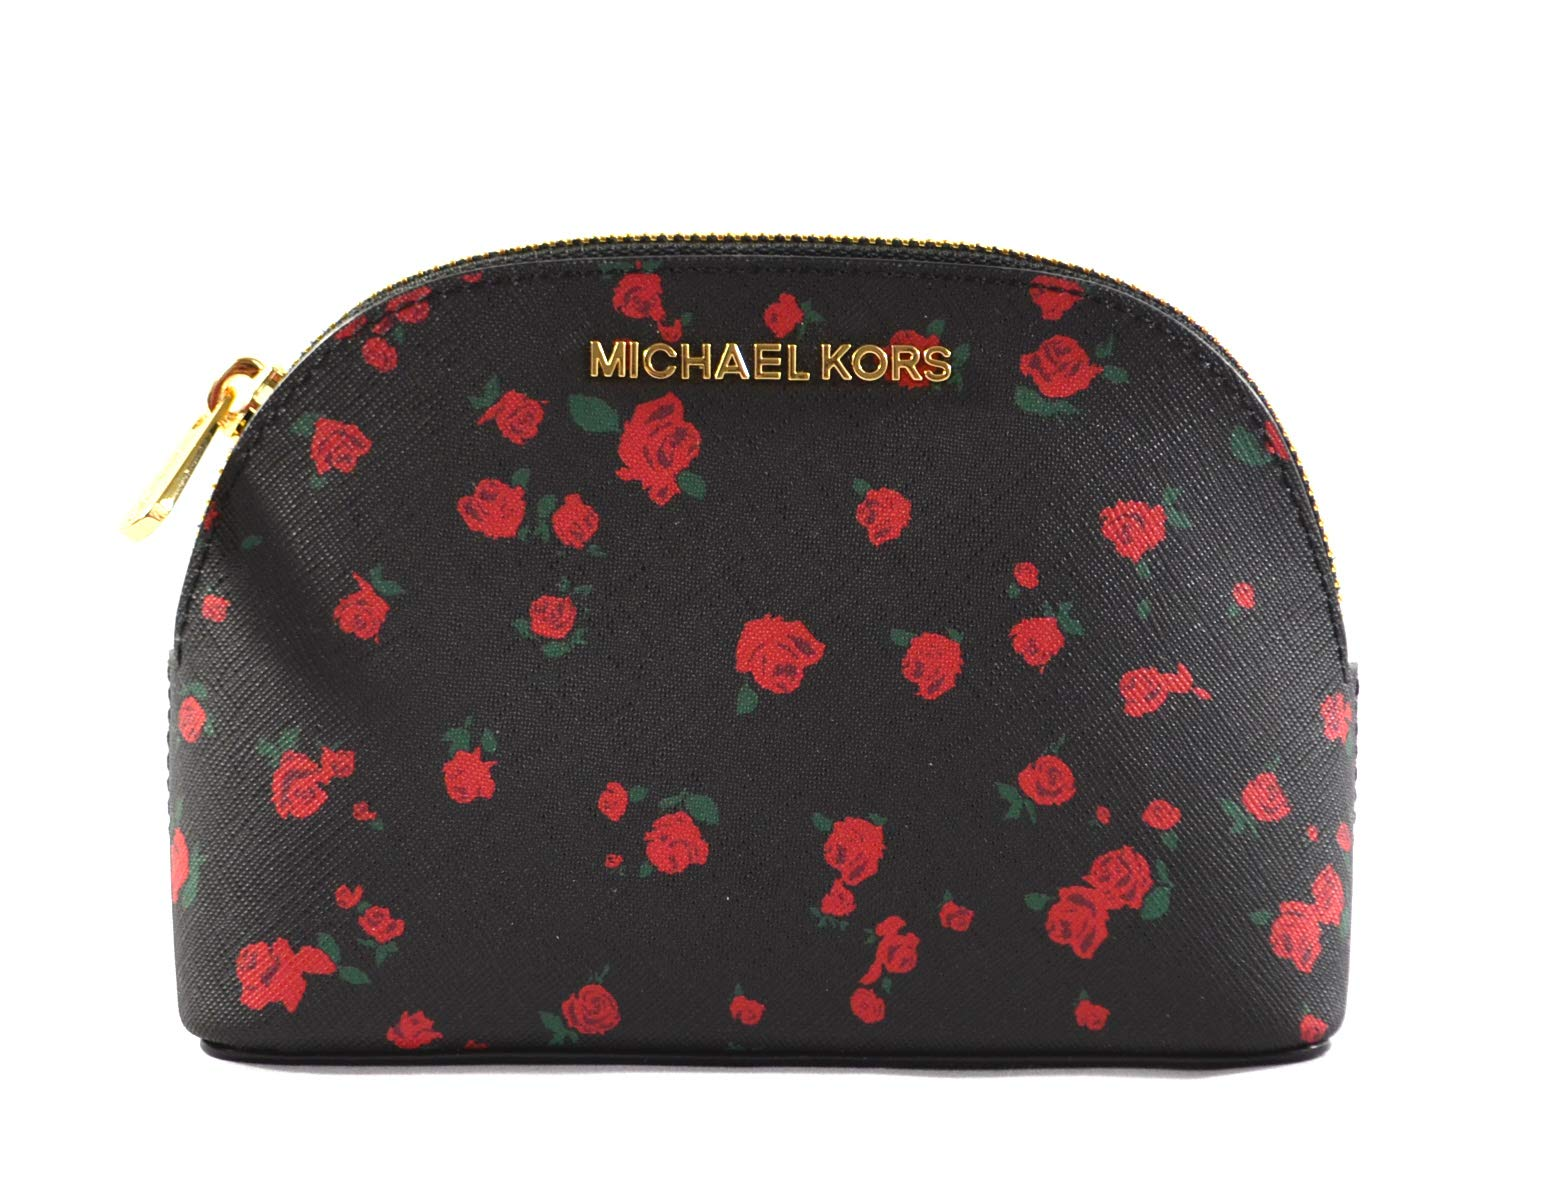 Michael Kors Jet Set Travel Women's Large Travel Pouch Cosmetic Case with Rose Print, Black Red